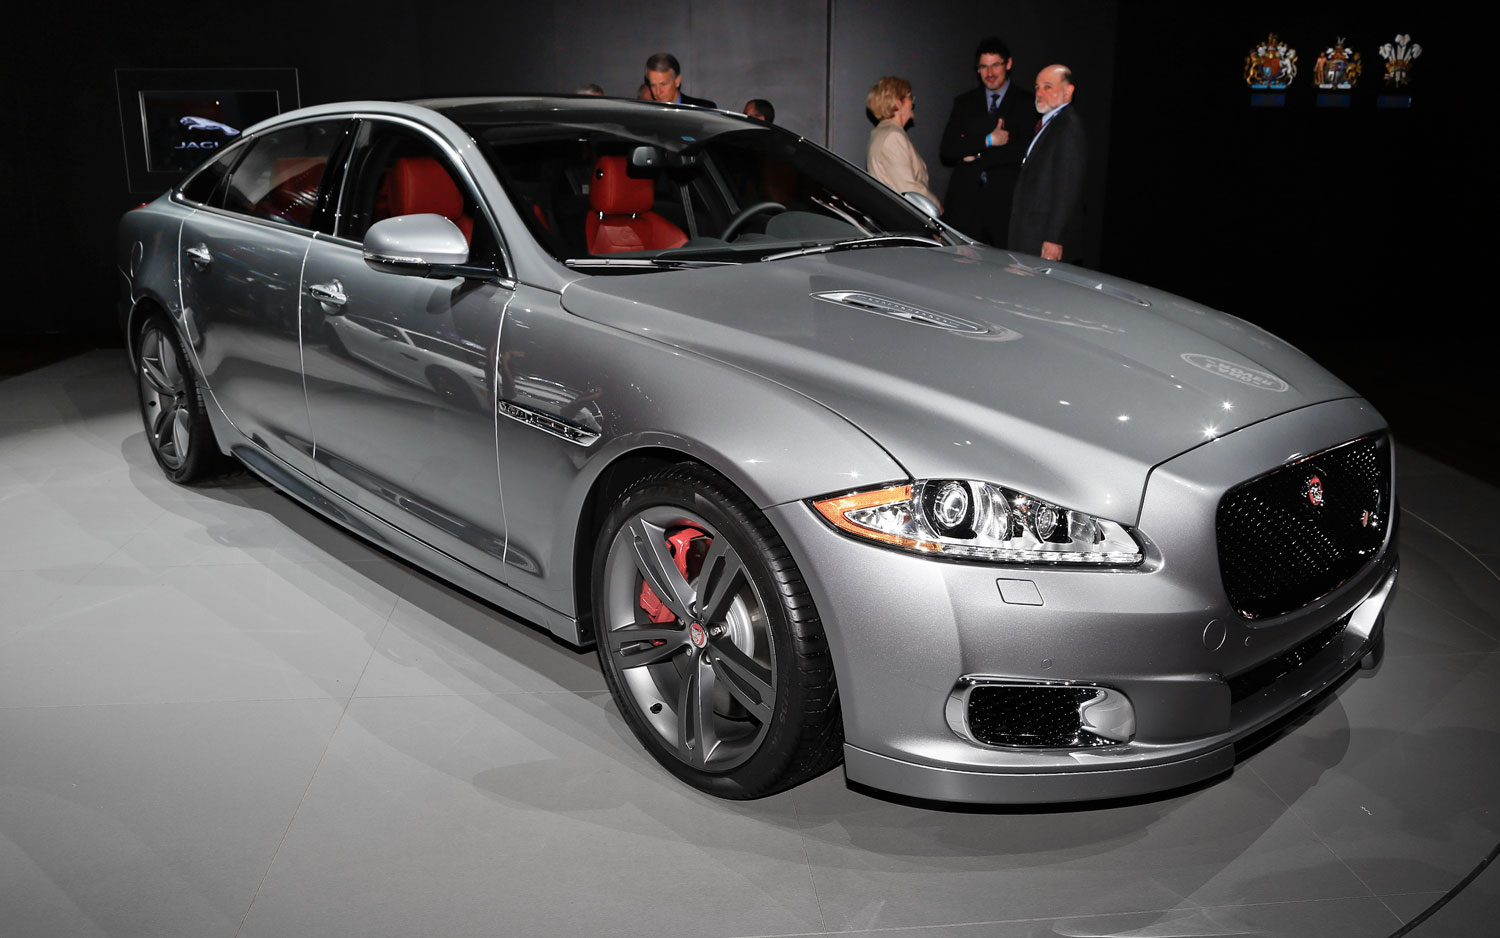 550-hp 2014 jaguar xjr makes debut in new york - motortrend